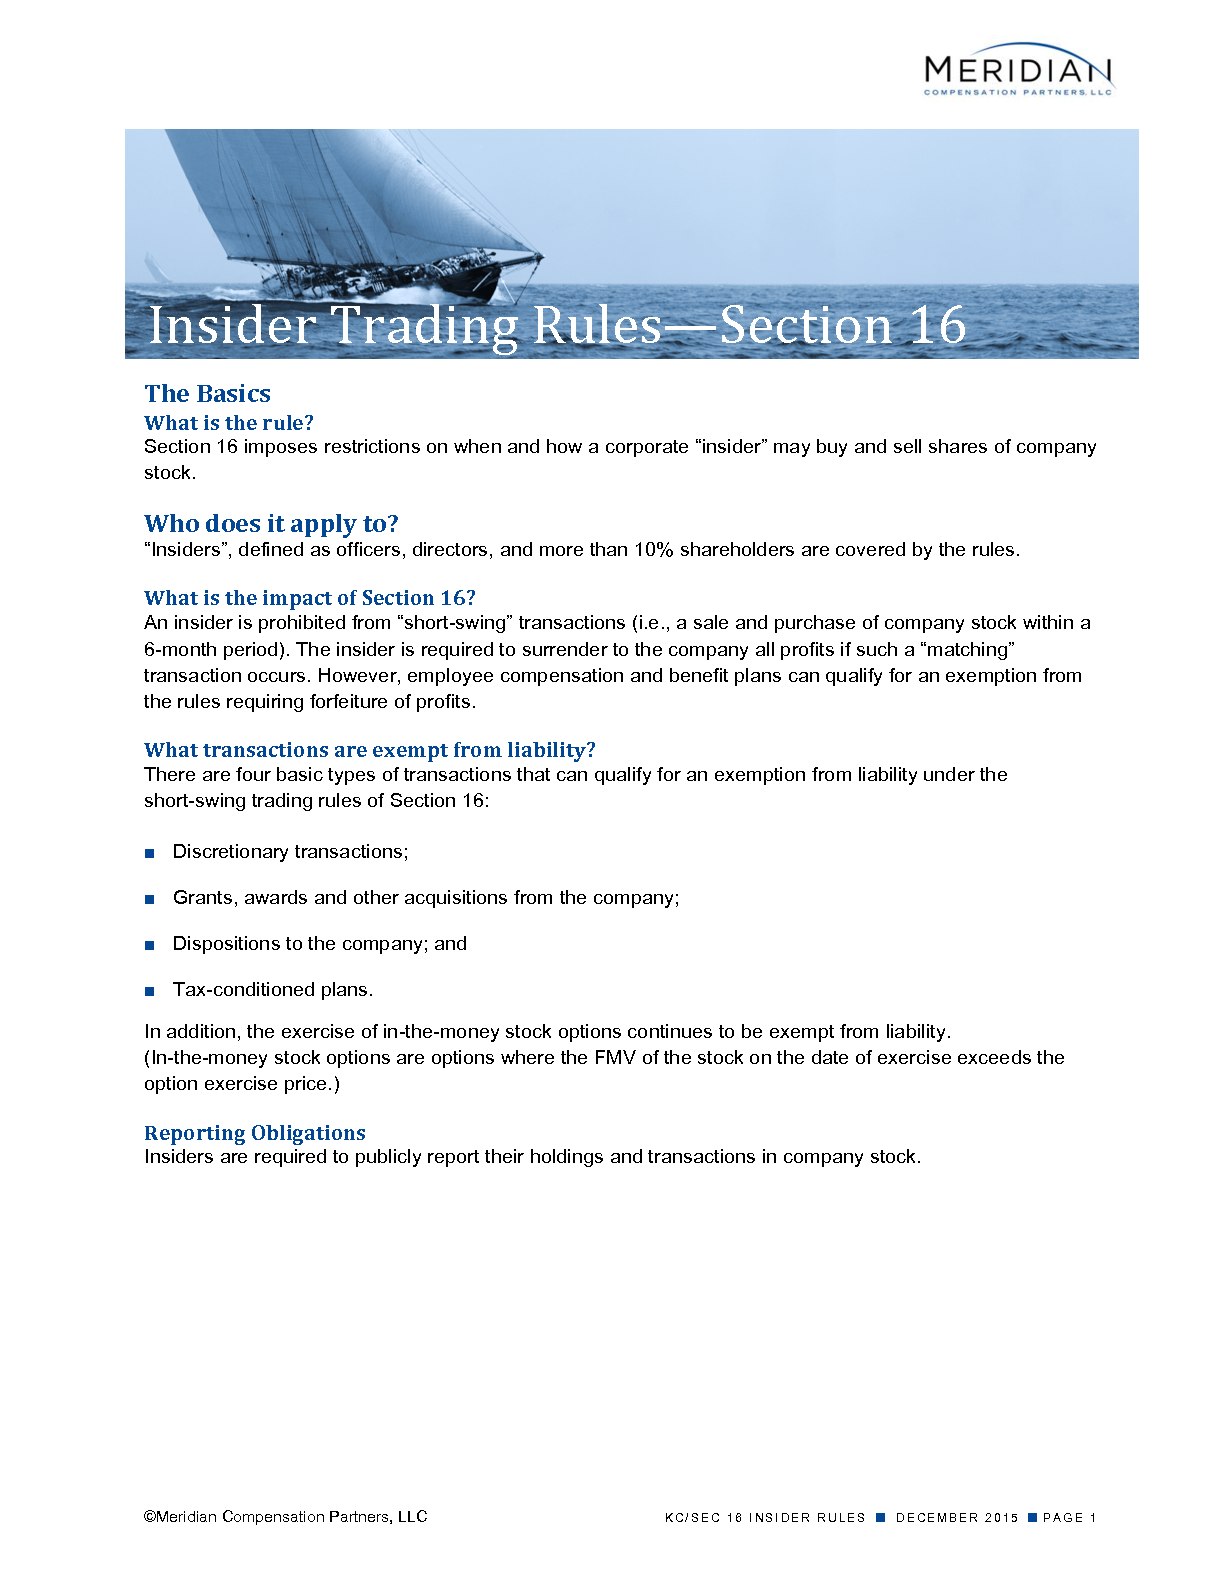 Insider Trading Rules—Section 16 (PDF)